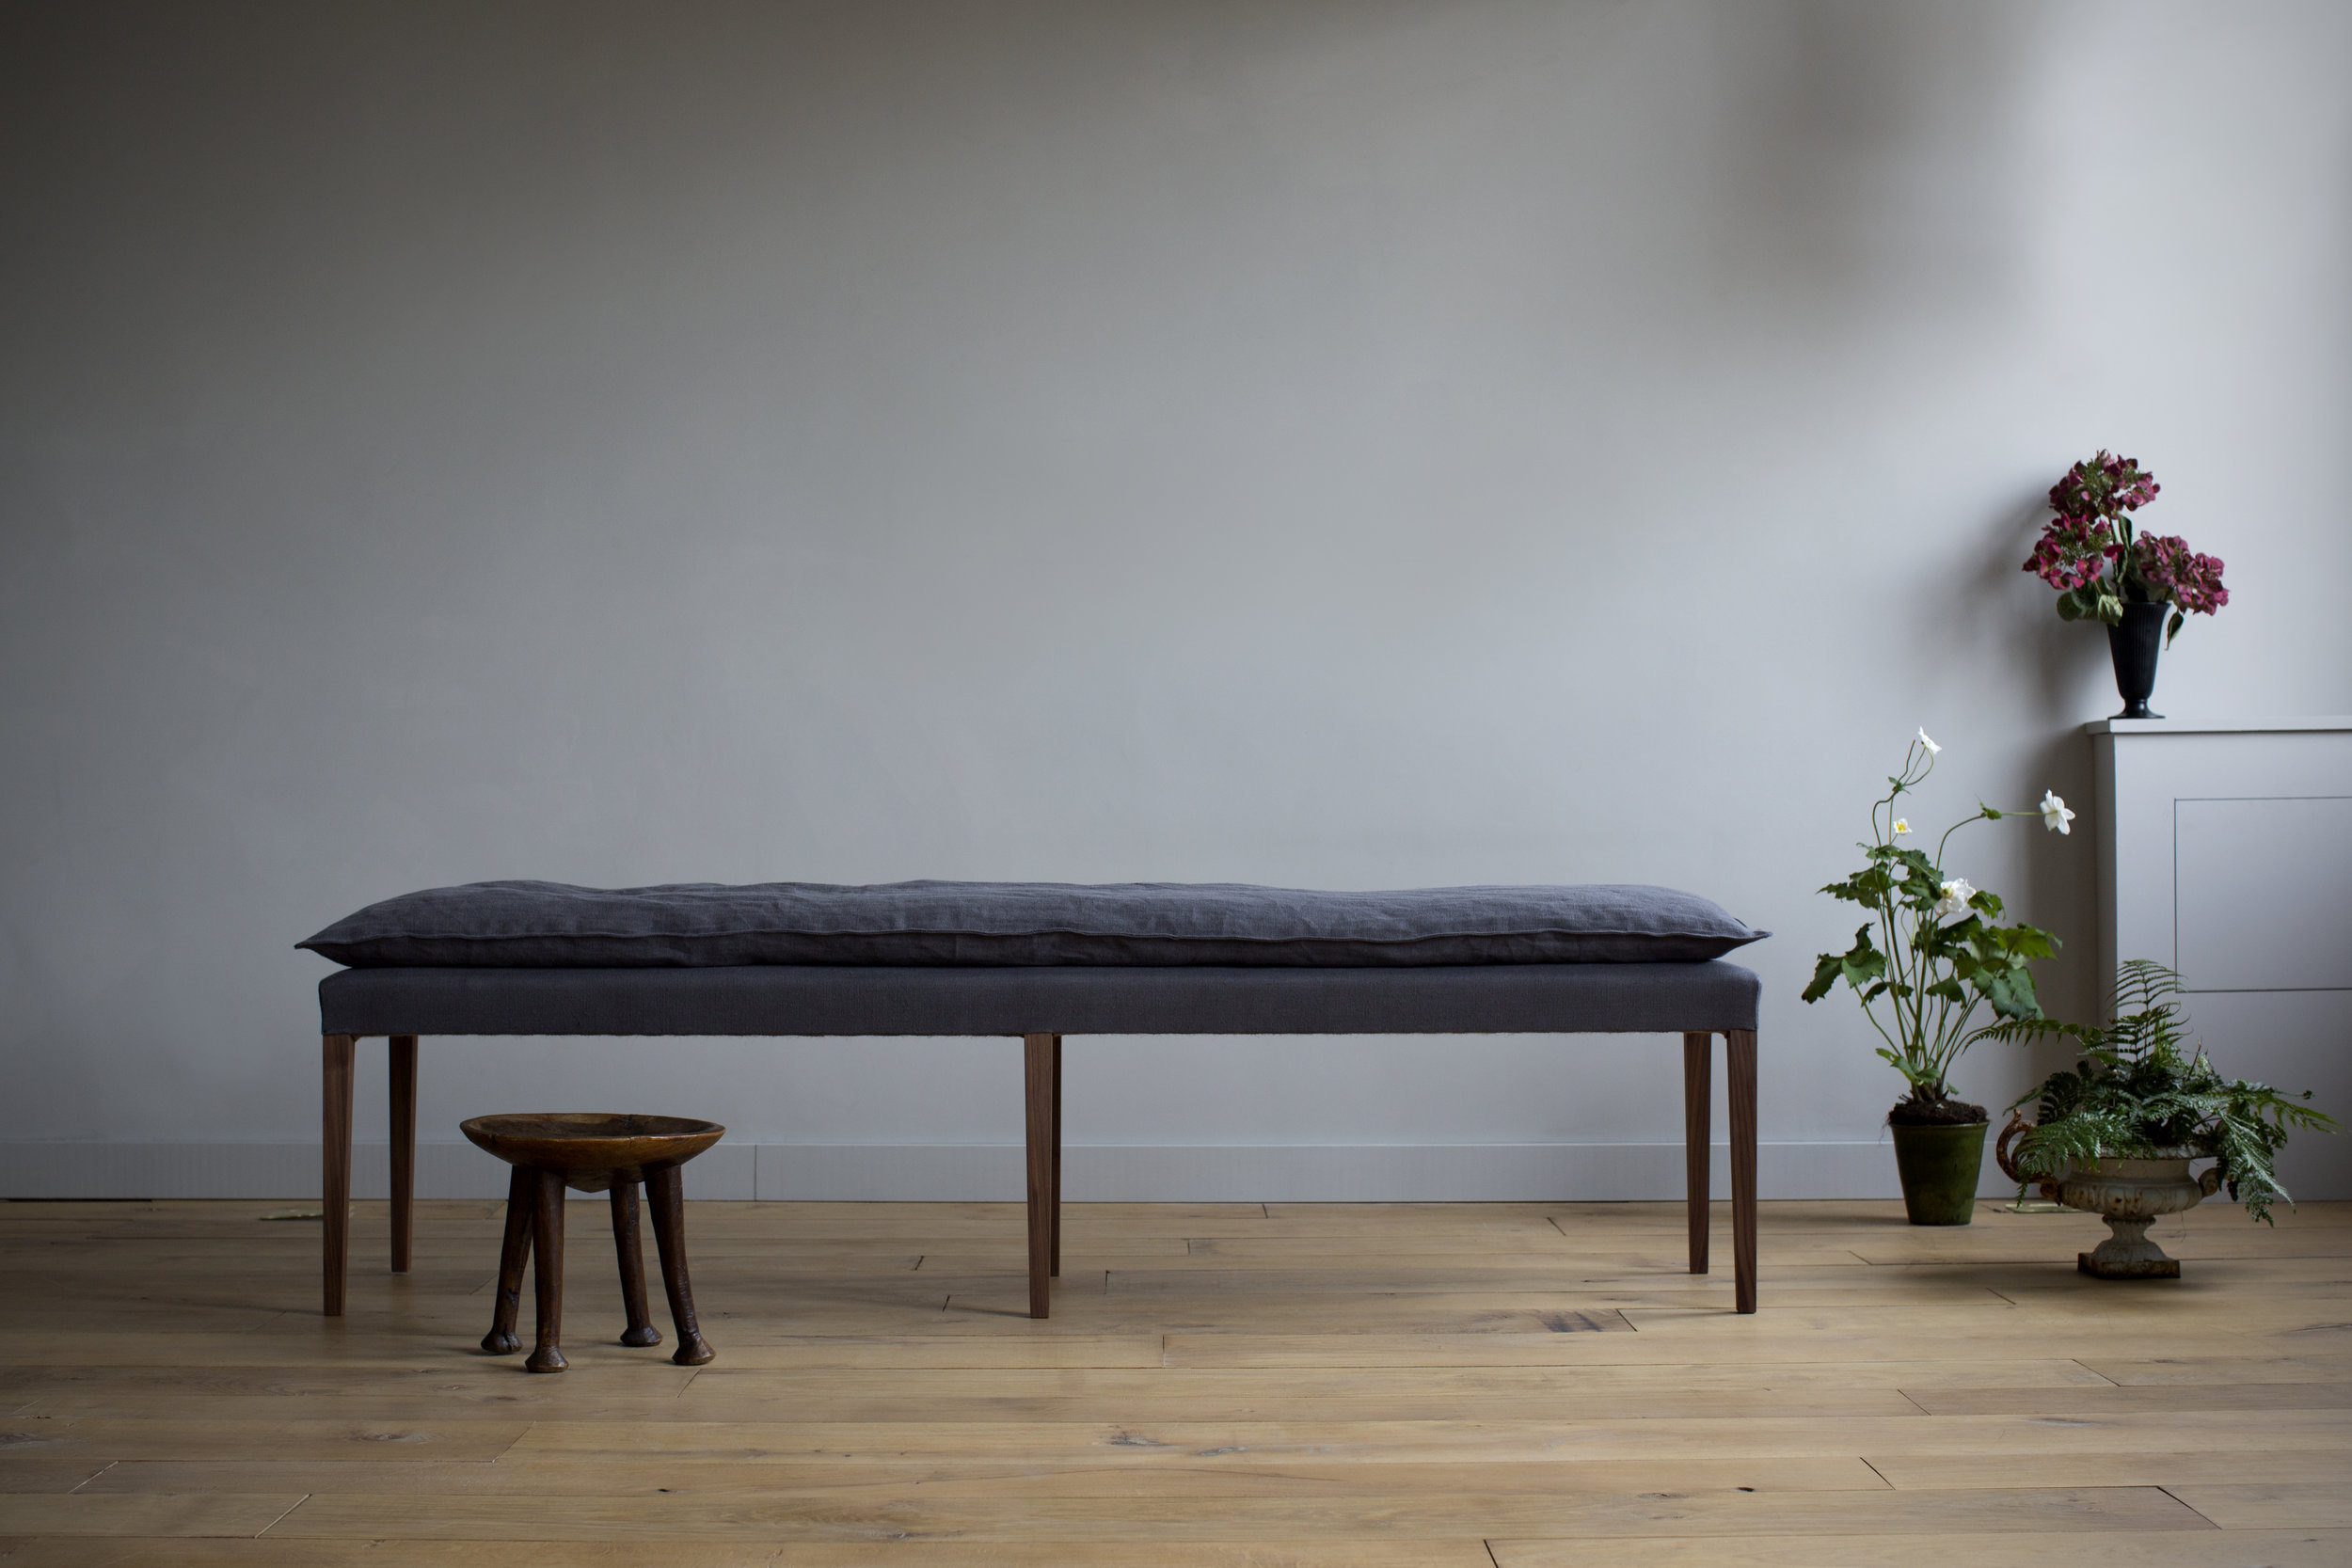 THE SIMPLE BENCH - ATELIER ELLIS